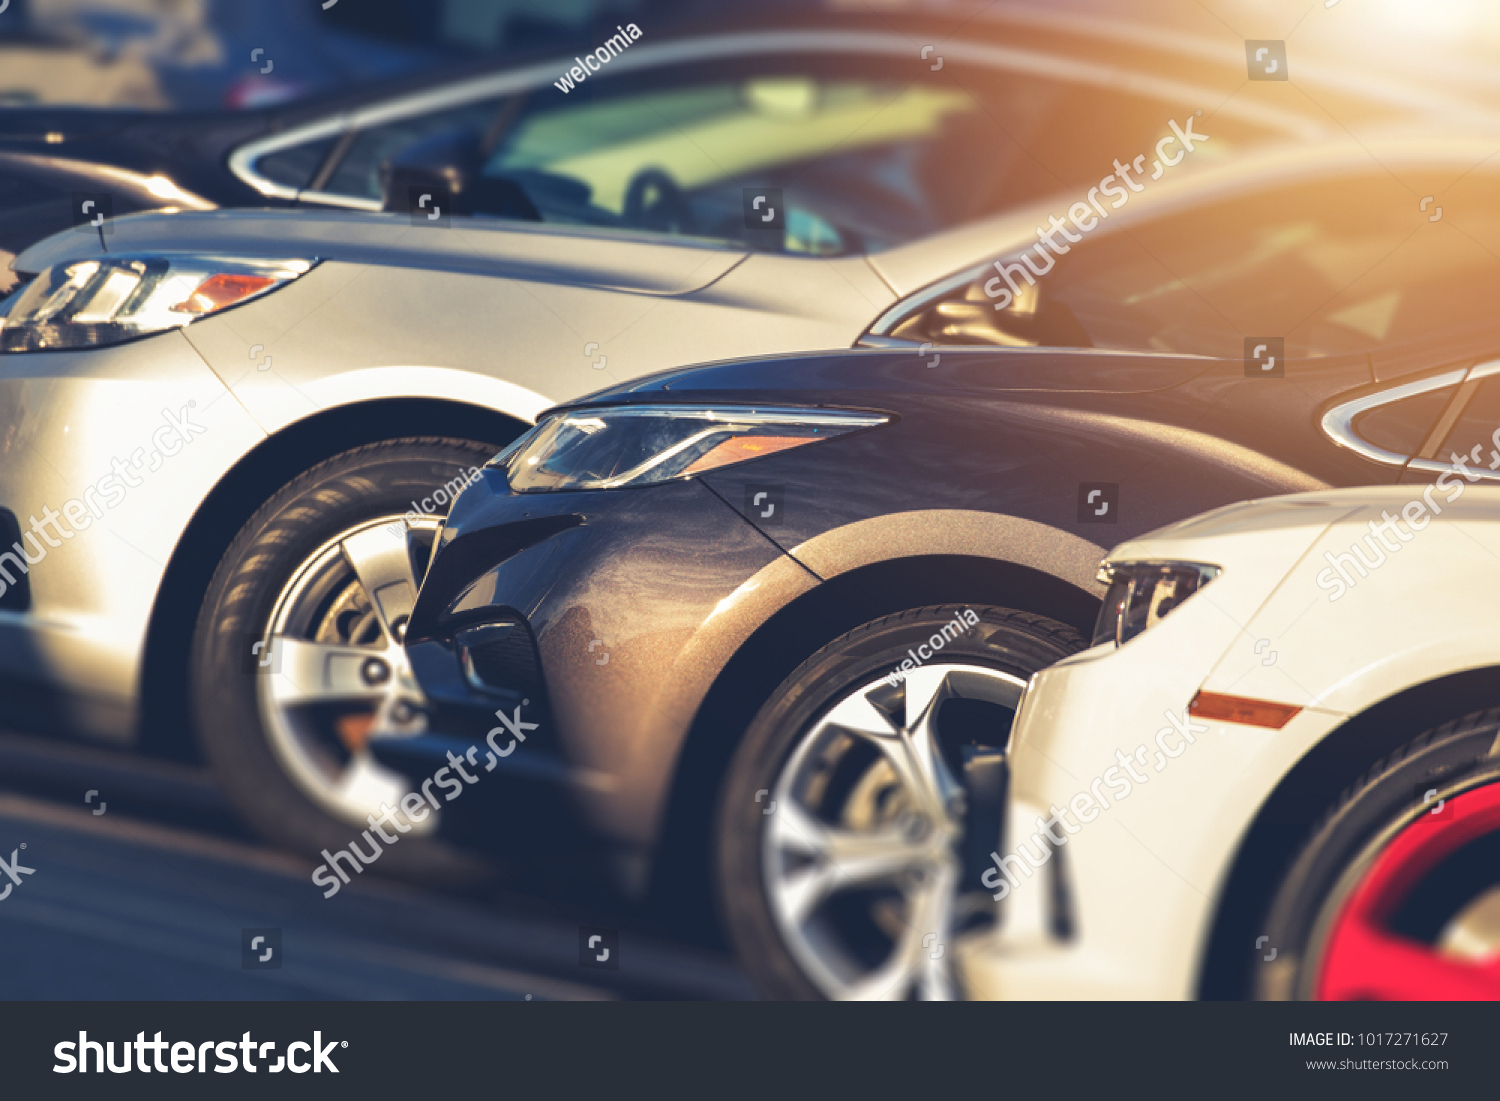 Pre Owned Vehicles For Sale in Stock. Used Cars on Dealership Lot. Automotive Industry. #1017271627